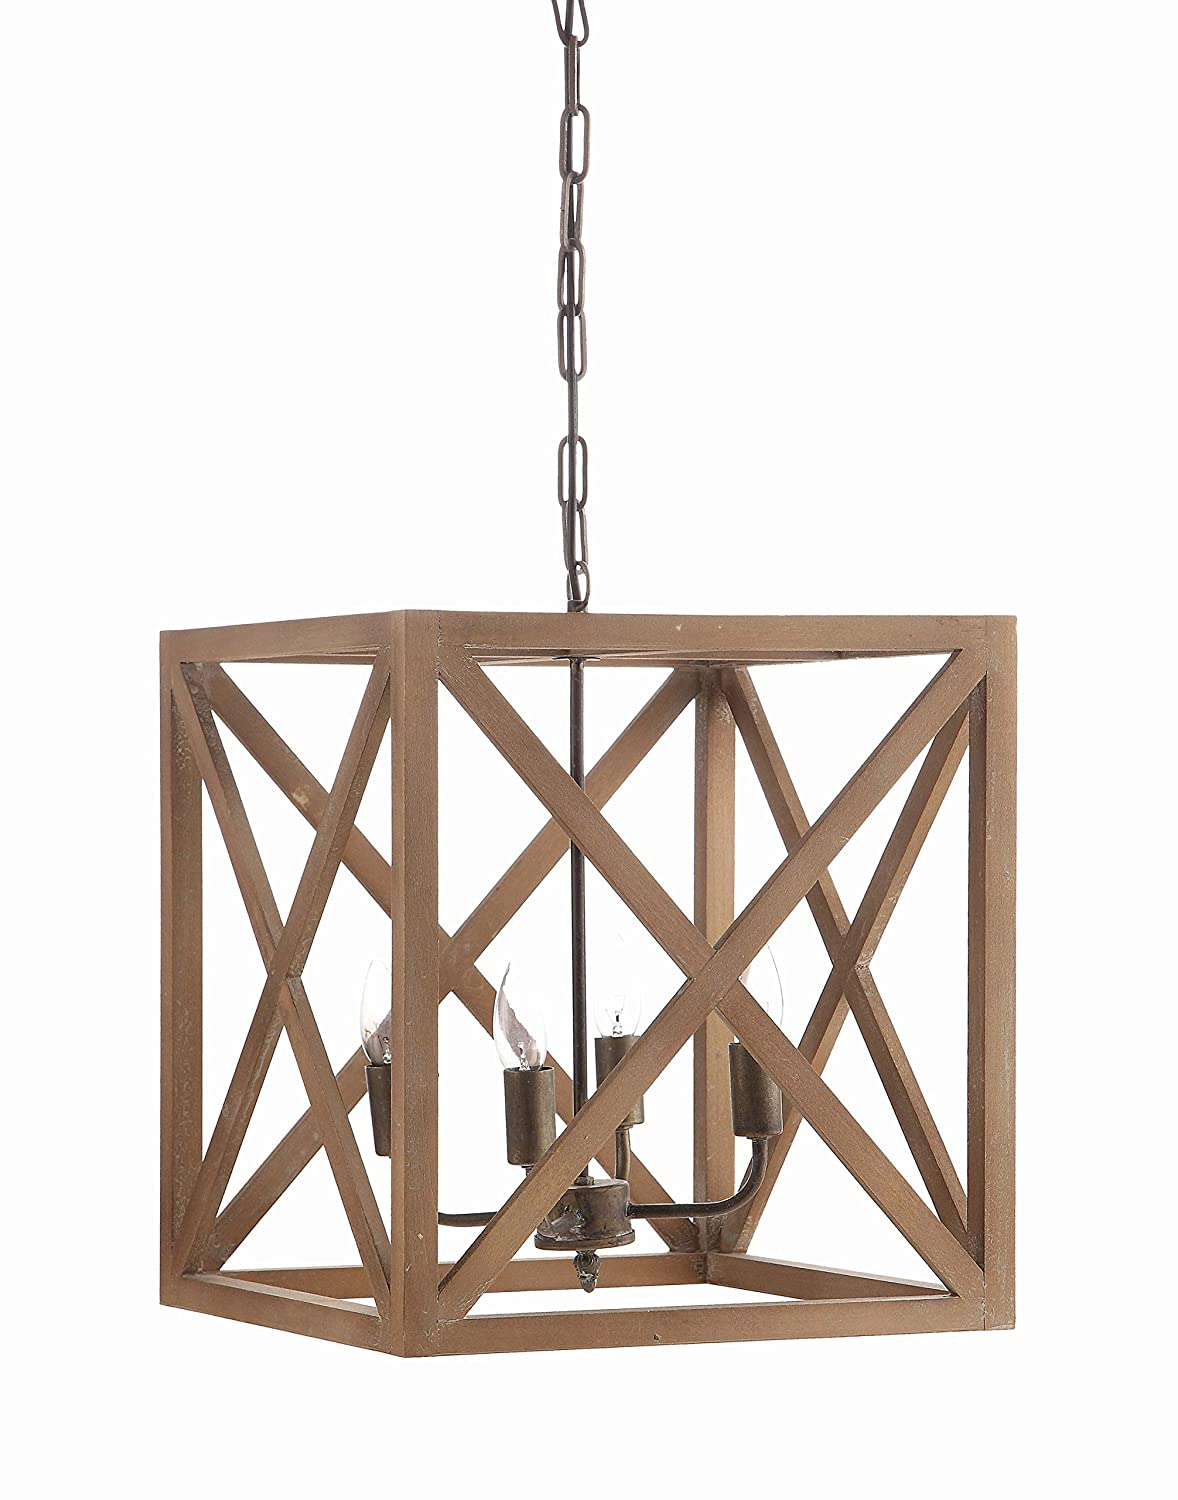 Amazon creative co op metal and wood chandelier 1575 square amazon creative co op metal and wood chandelier 1575 square by 1775 height home kitchen arubaitofo Image collections